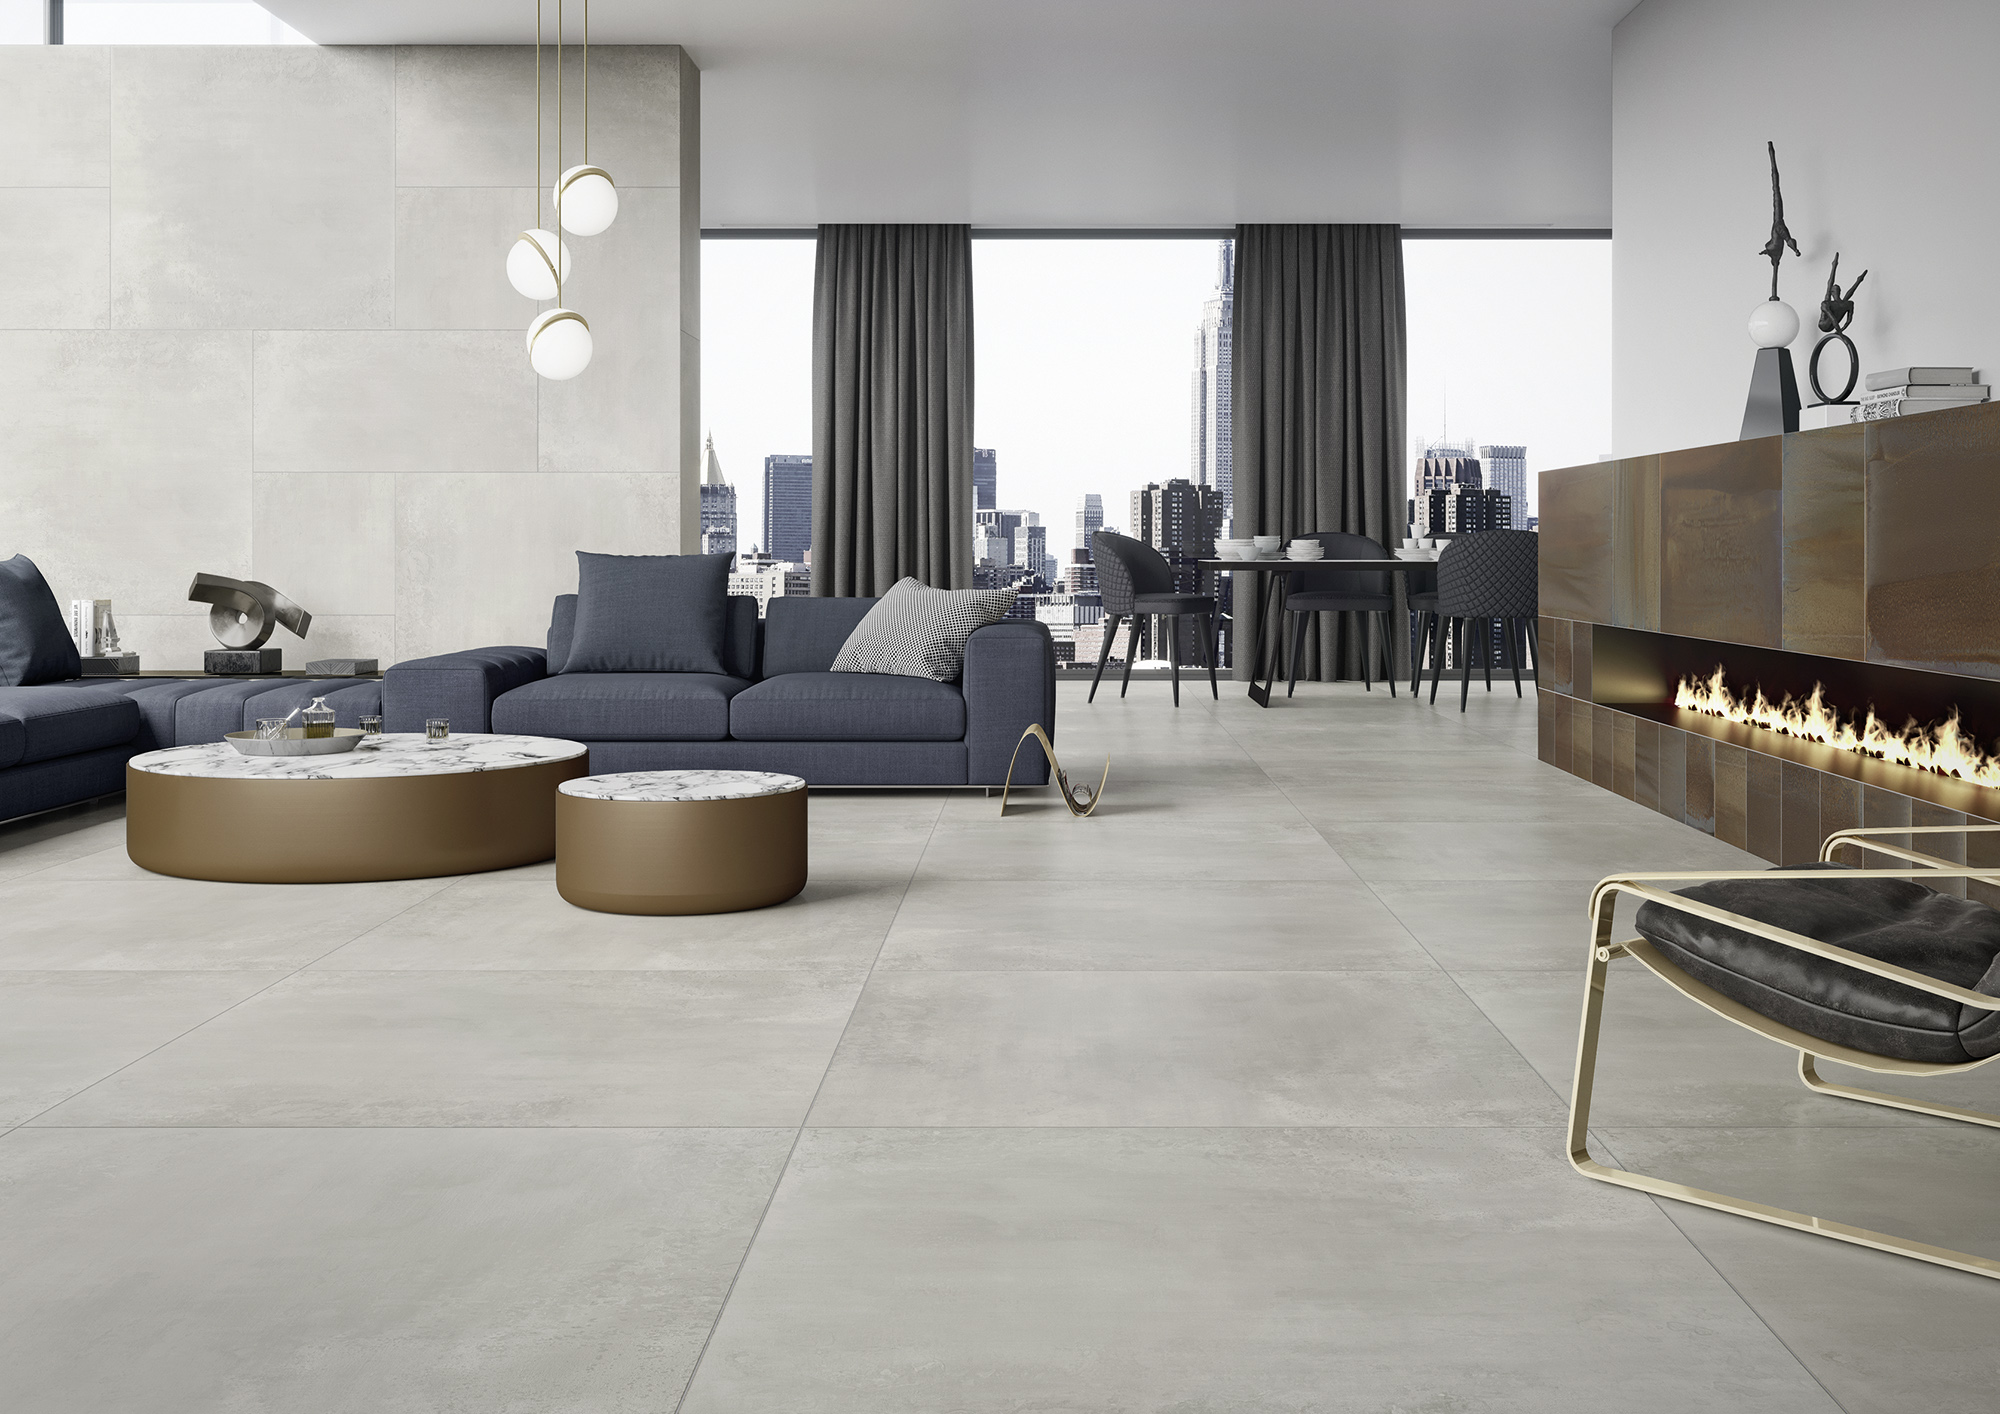 Thinactive tabac - Ceramic District